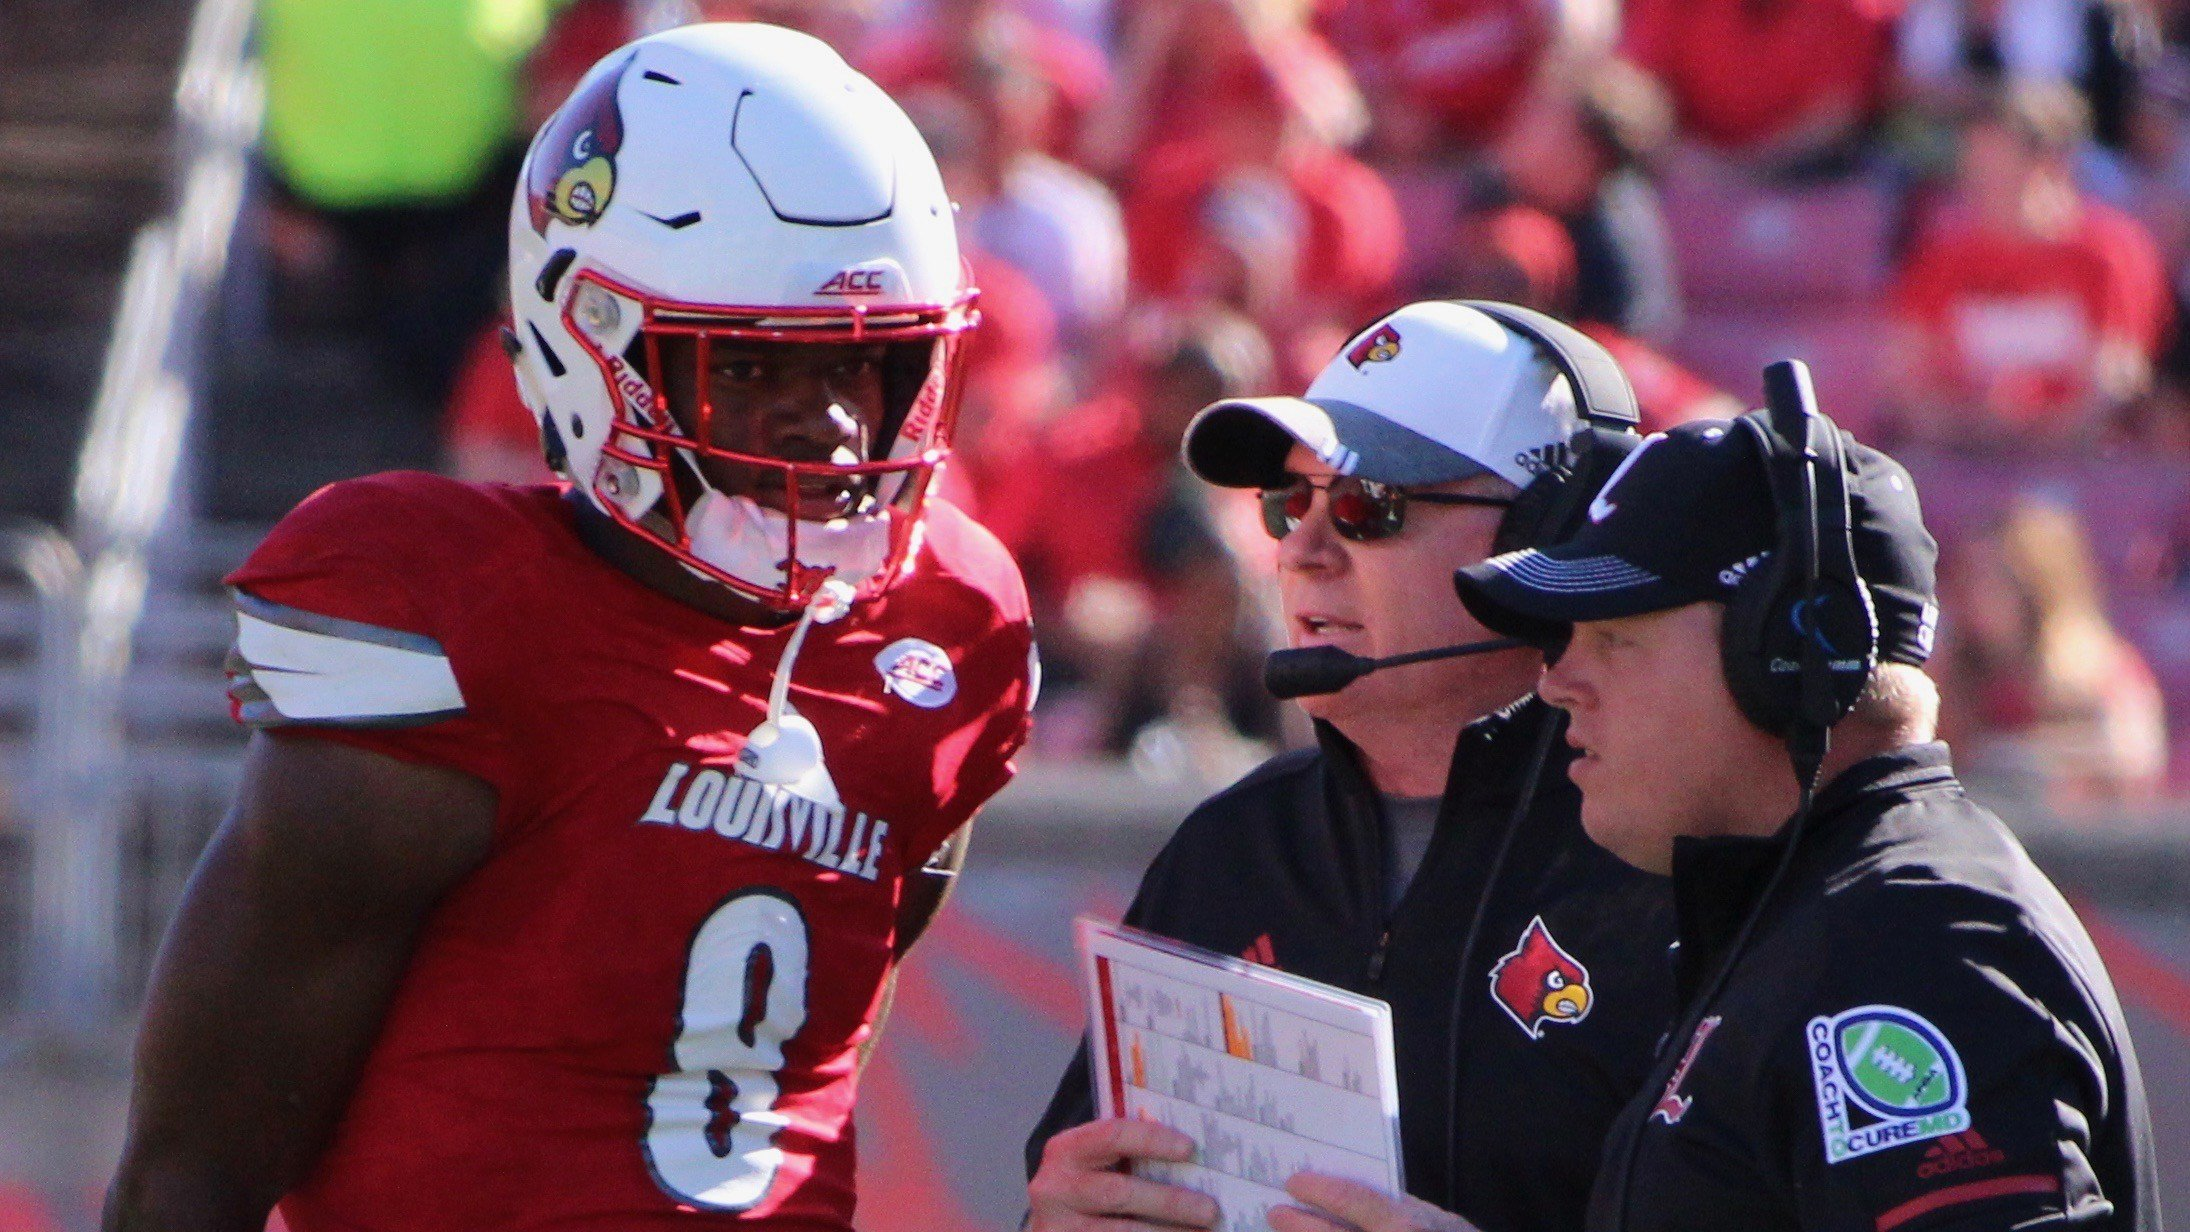 Louisville headed to TaxSlayer Bowl